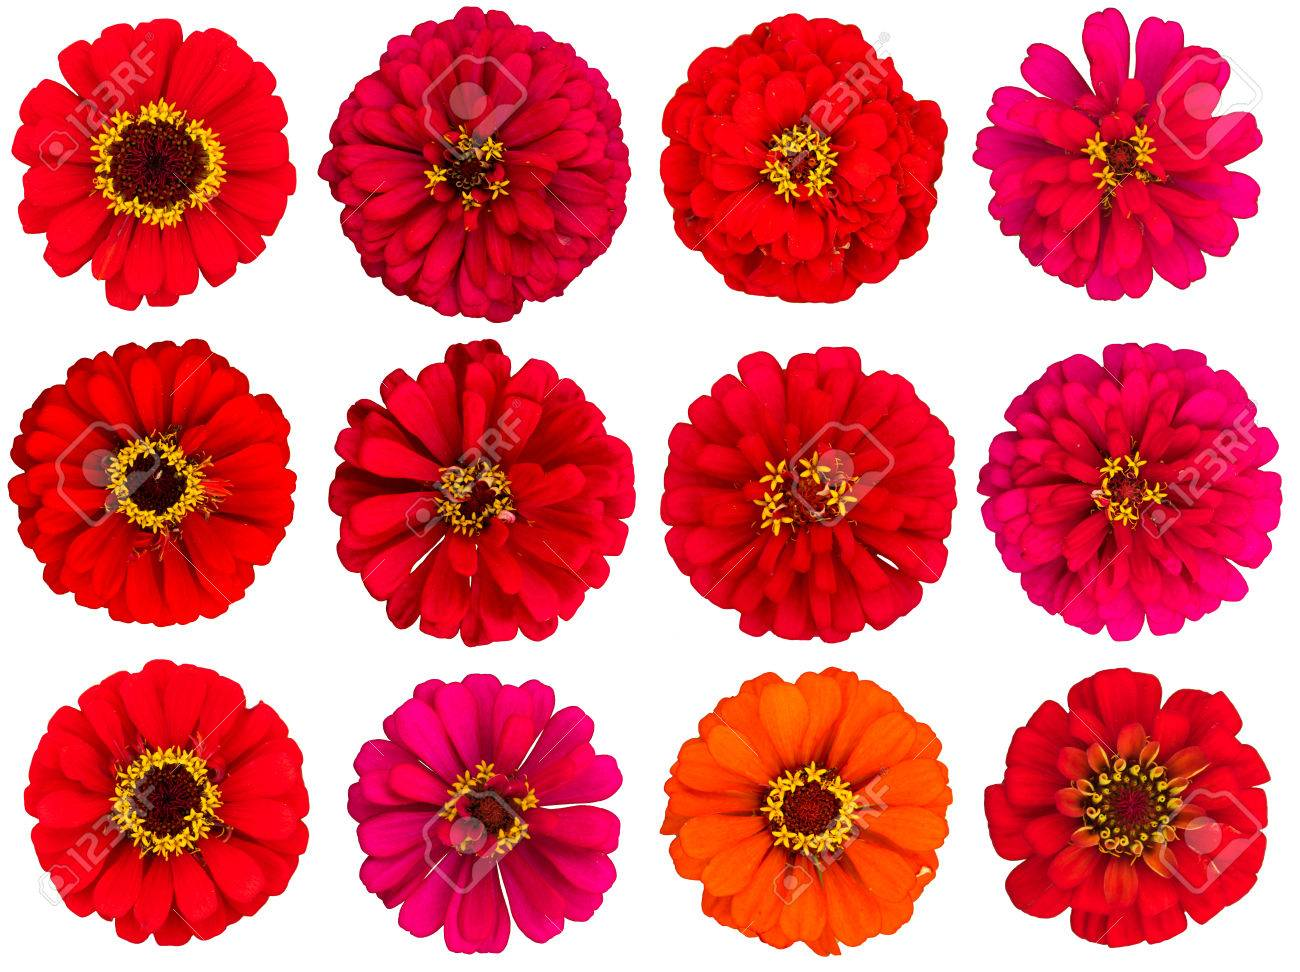 Red Zinnia Flowers Cut Out White Background Stock Photo Picture 1300x972